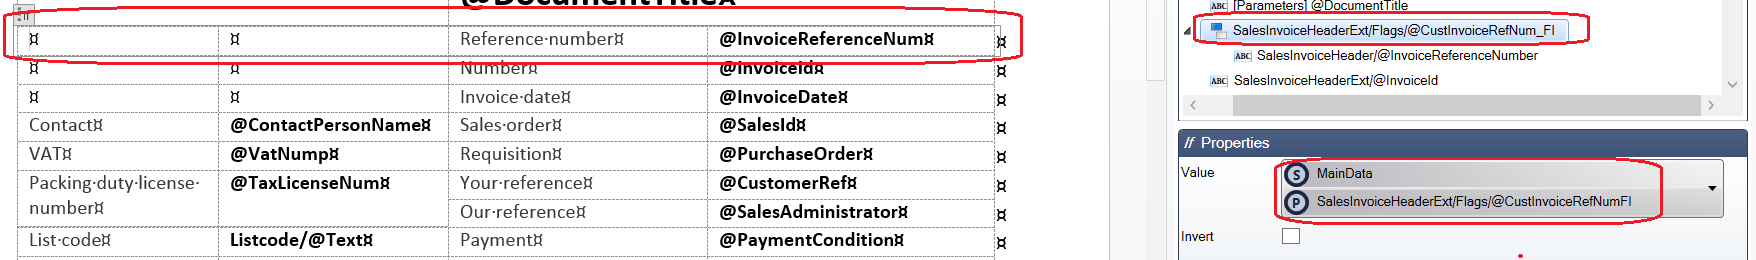 Example 6: Sales Invoice Report - Docentric AX